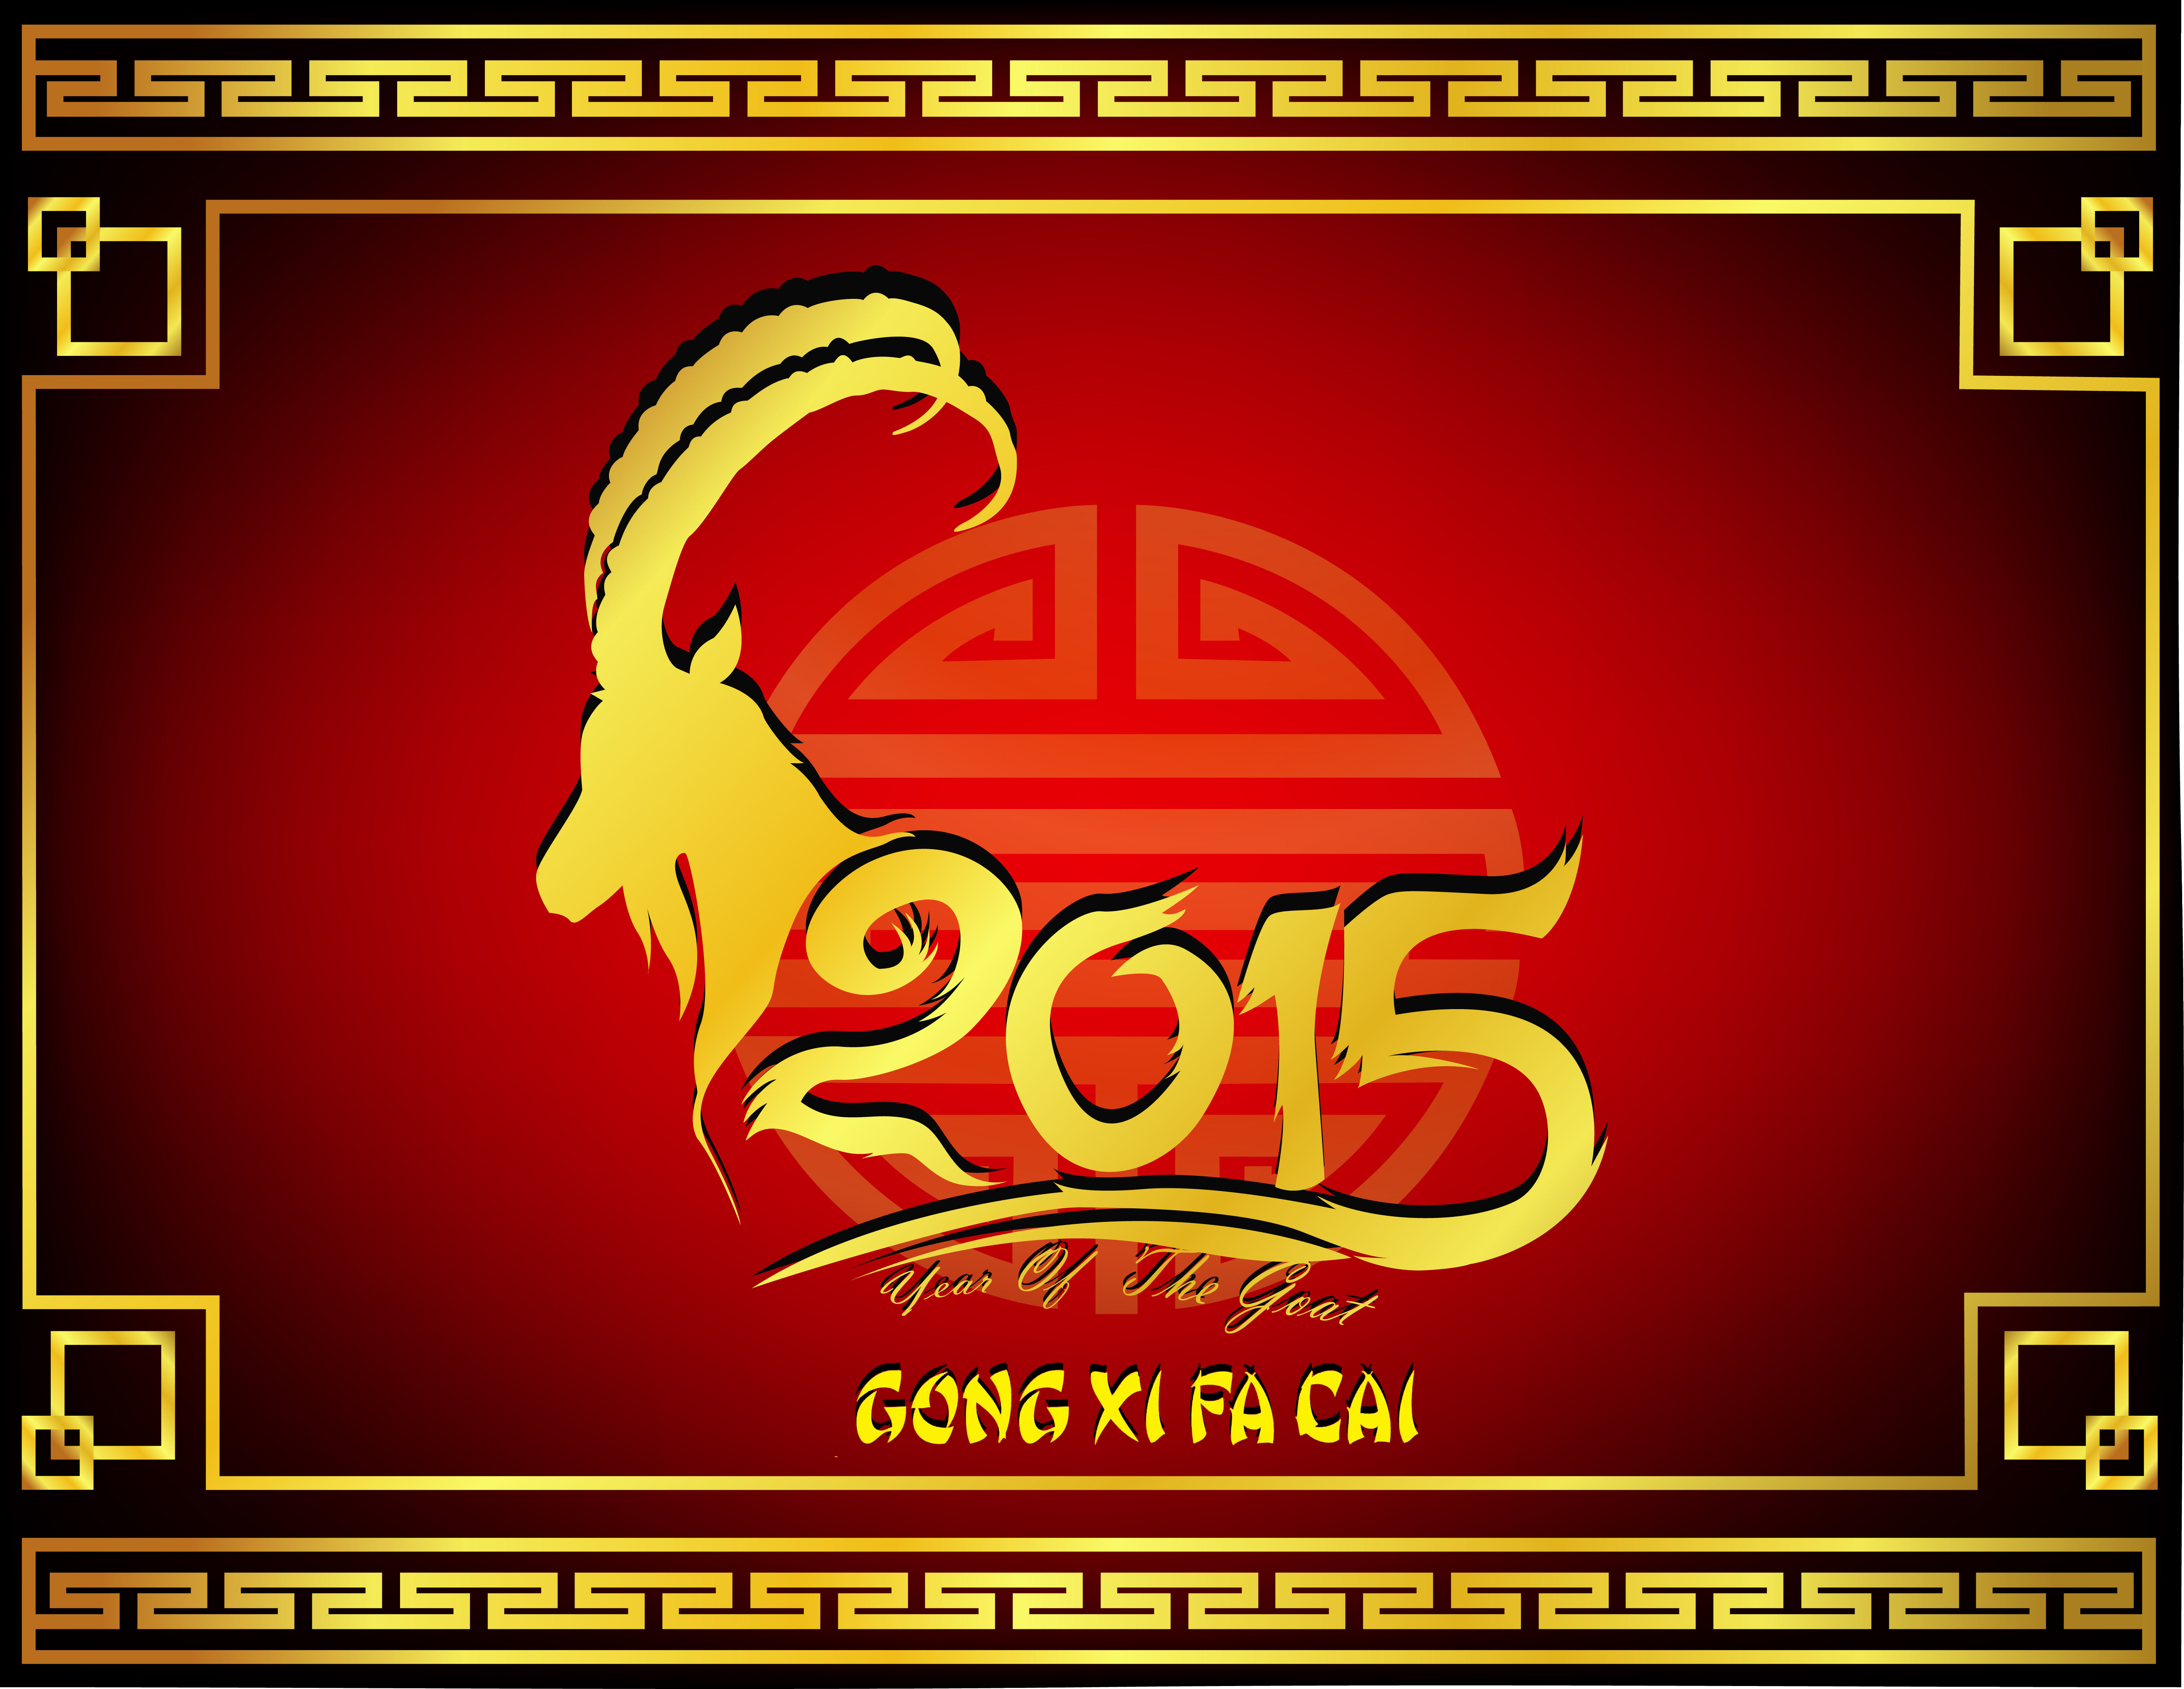 Chinese New Year Wallpaper For 2015 Gong Xi Fa Cai Hd Wallpapers